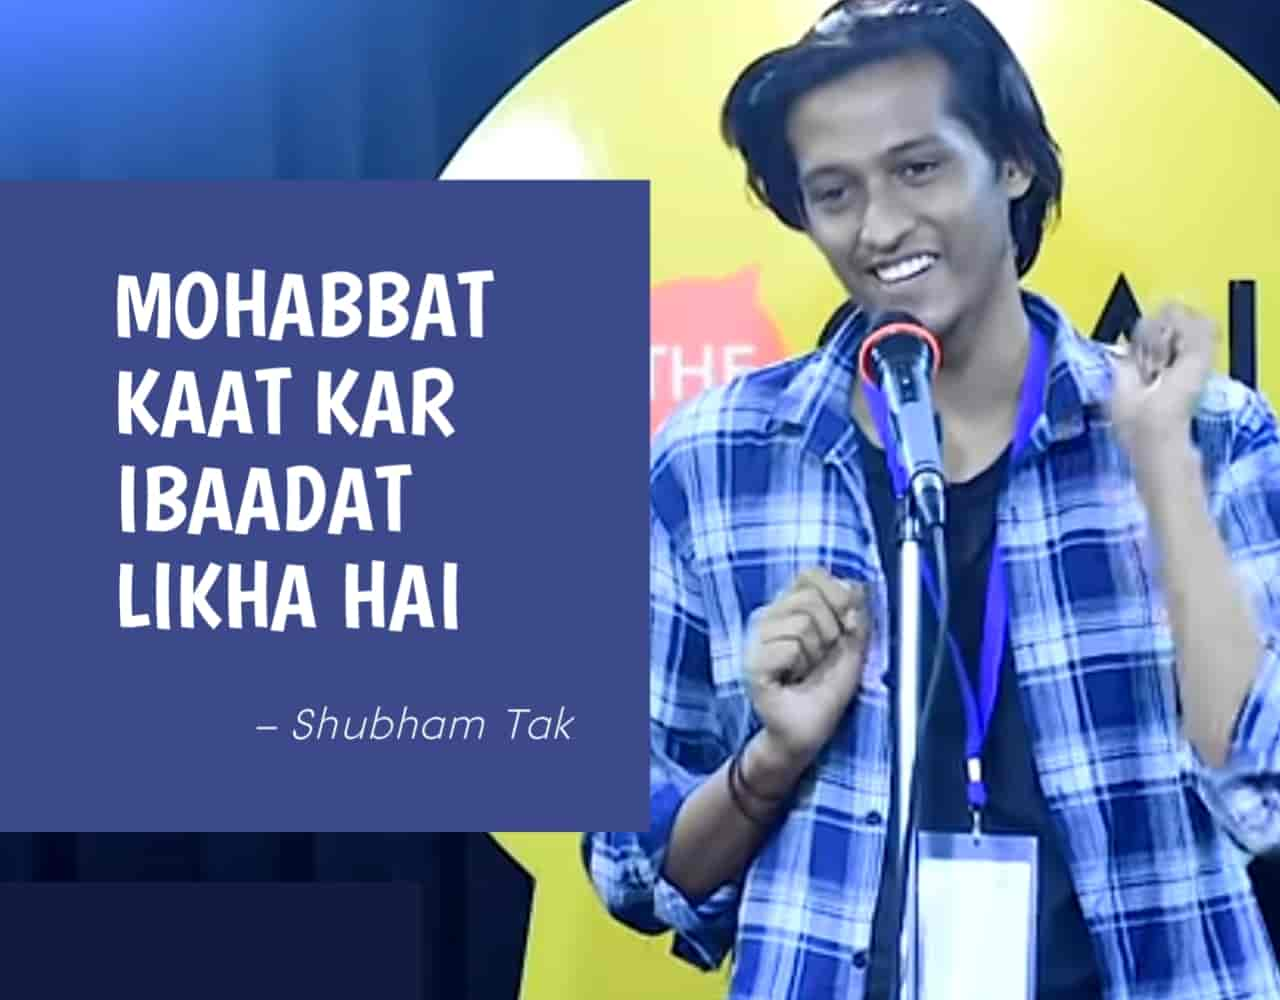 The beautiful Poetry  'Mohabbat Kaat Kar Ibaadat Likha Hai' for The Social House is presented by Shubham Tak and also written by him